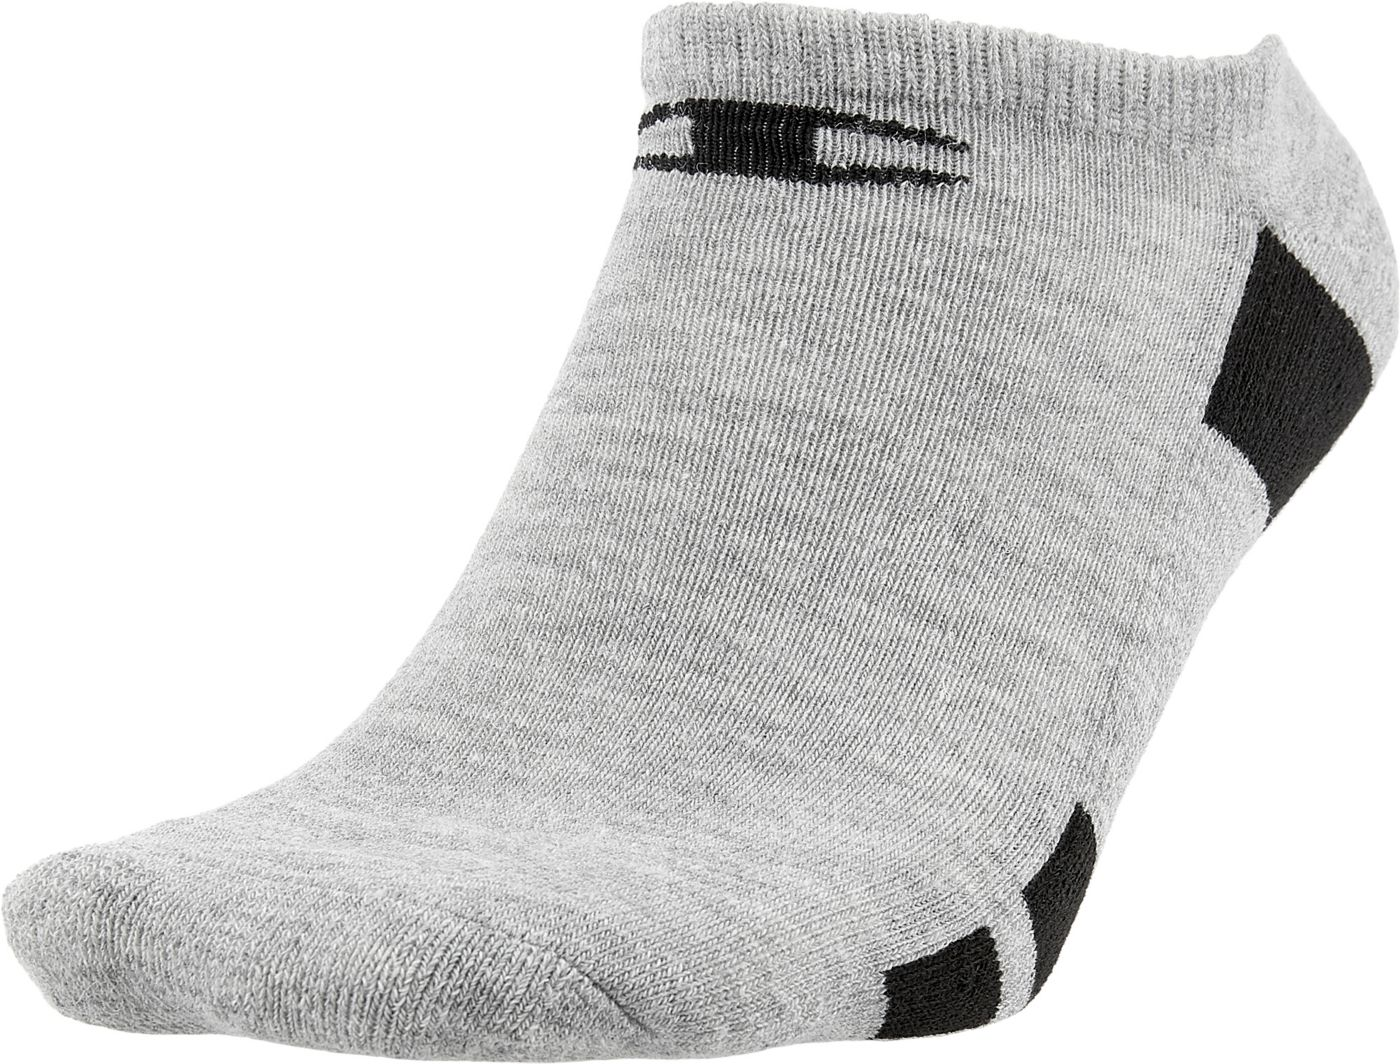 Champion Women's Performance No Show Socks - 6 Pack